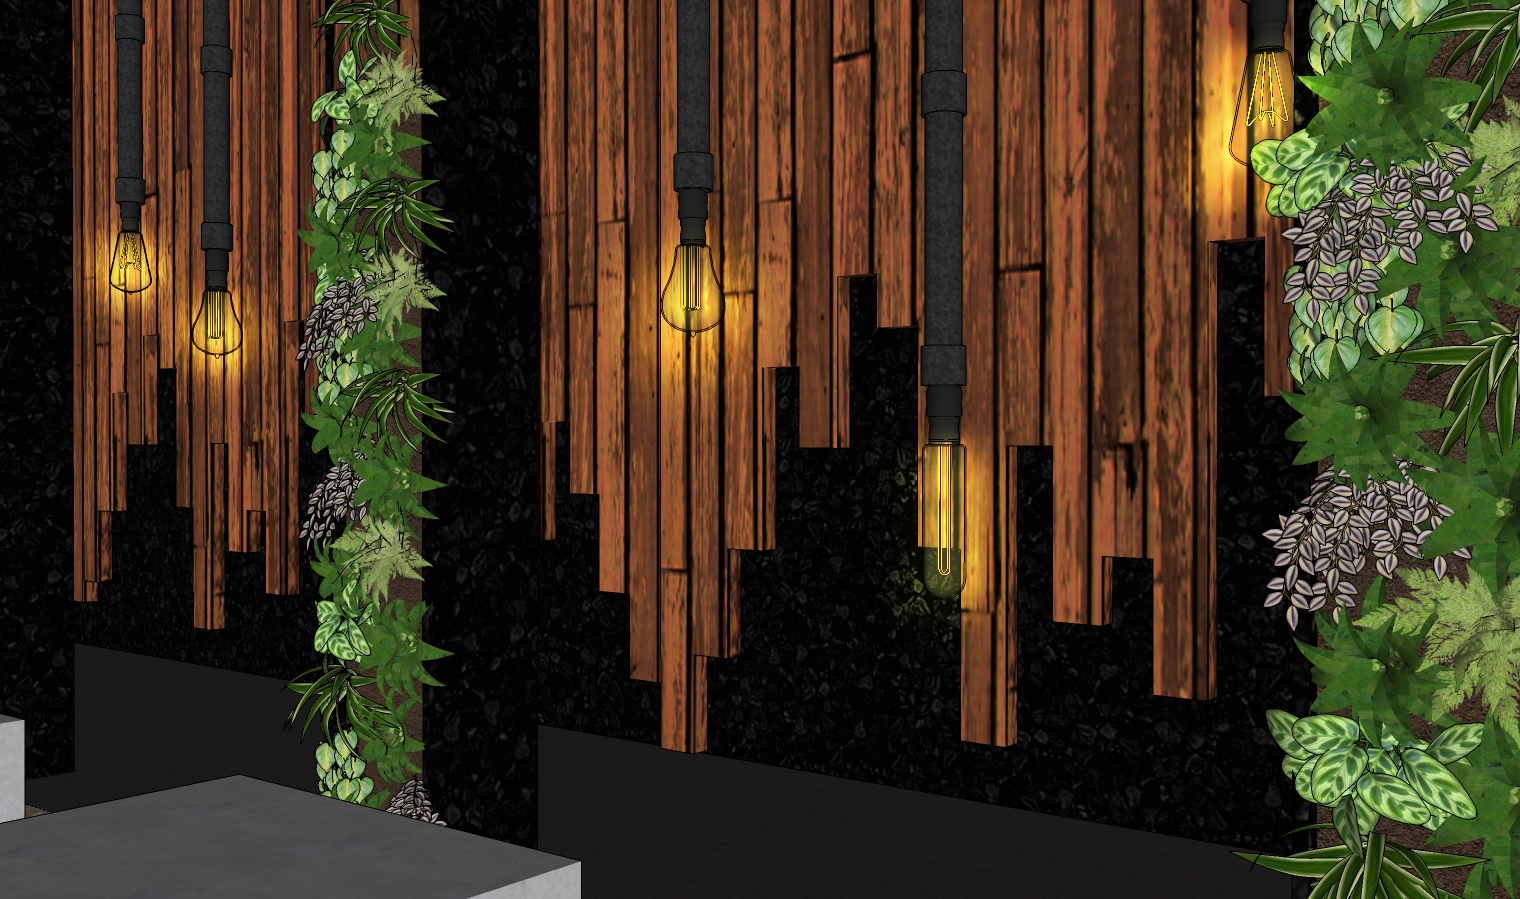 Wall Panel and Planters